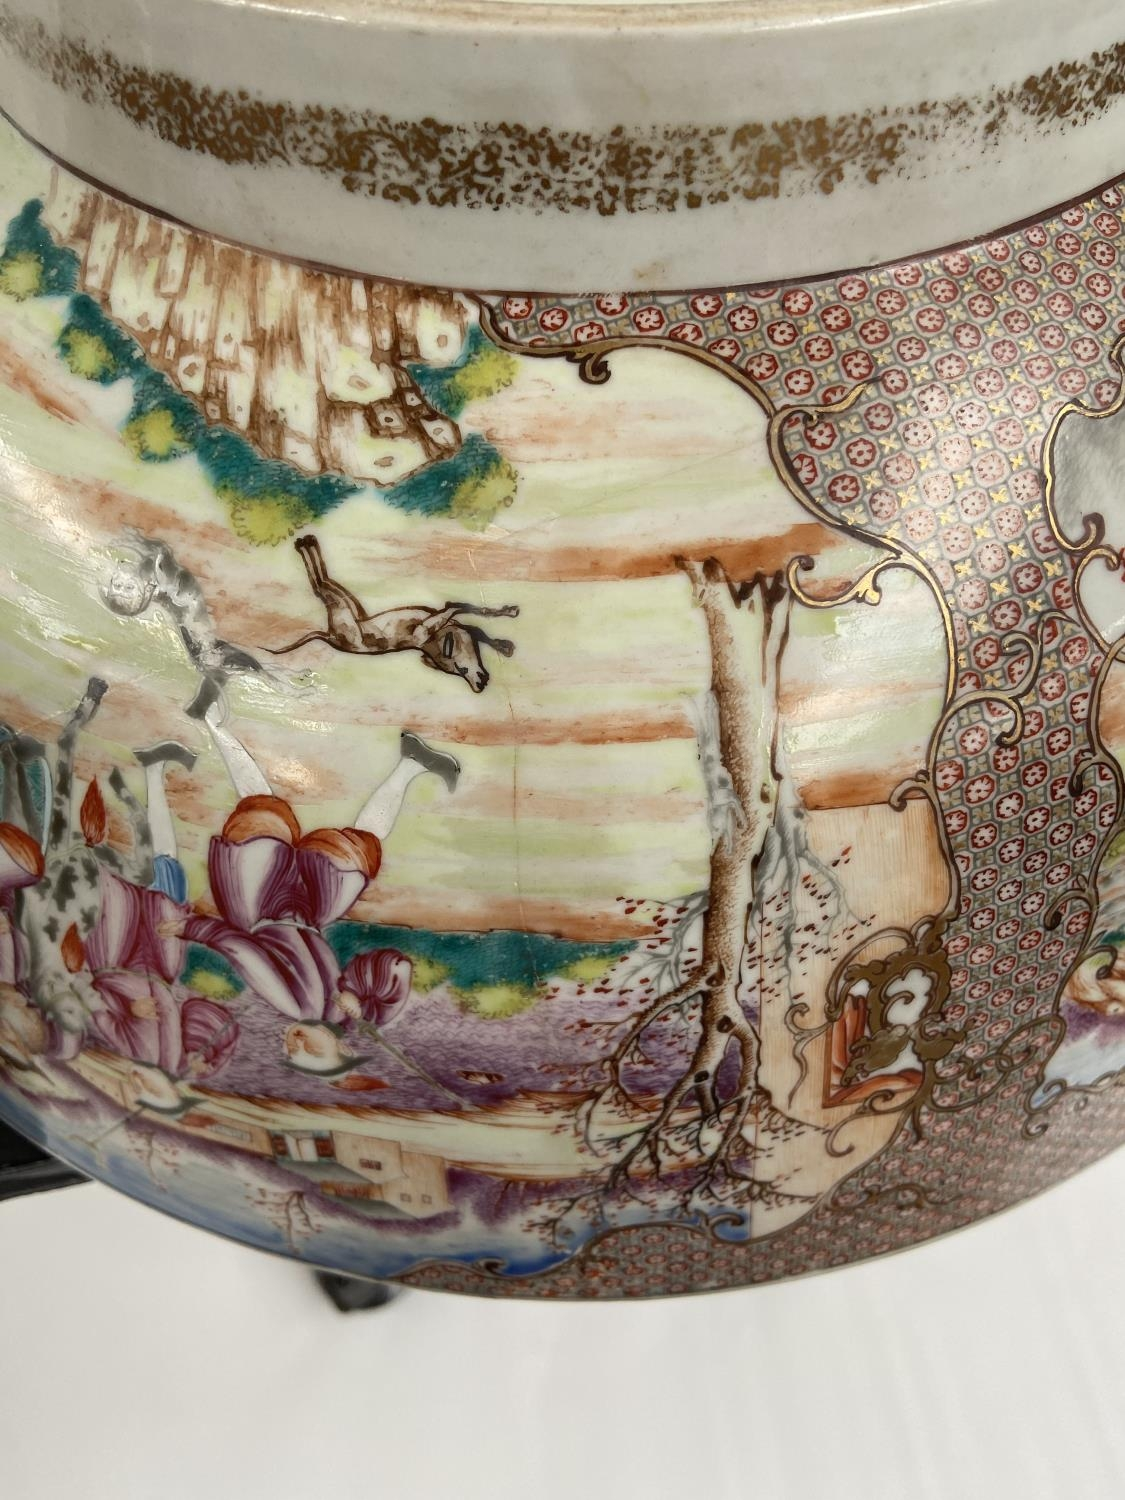 A LARGE 19TH CENTURY CHINESE HAND PAINTED BOWL. EXTERIOR DEPICTS CHINESE HUNTING SCENE PANELS. THE - Image 39 of 39